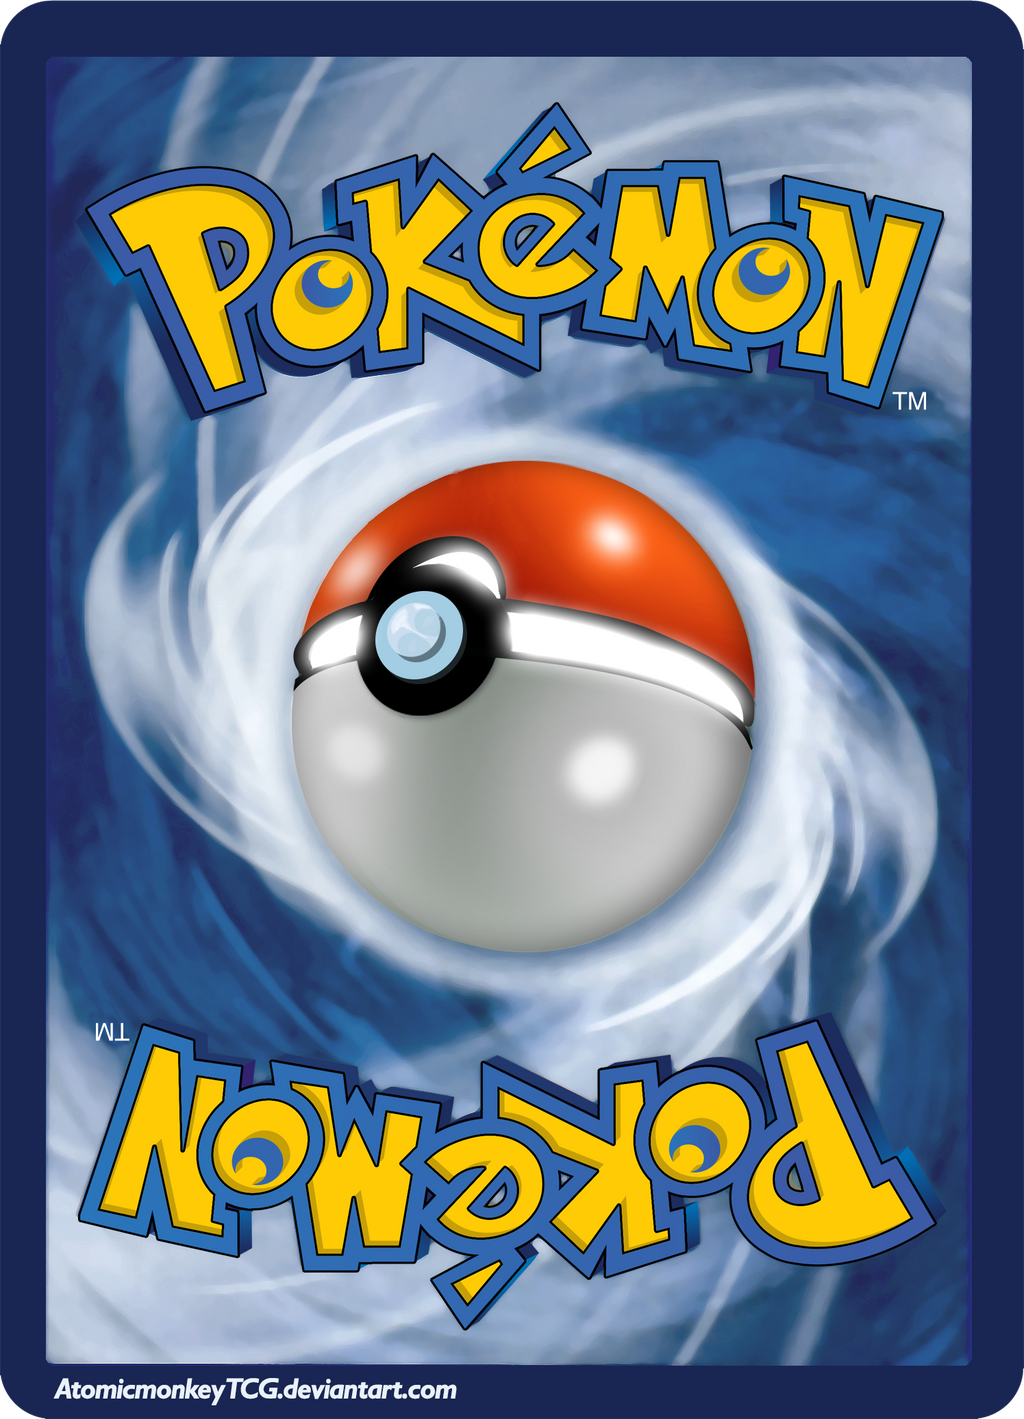 pokemon card backside in high resolution by atomicmonkeytcg on